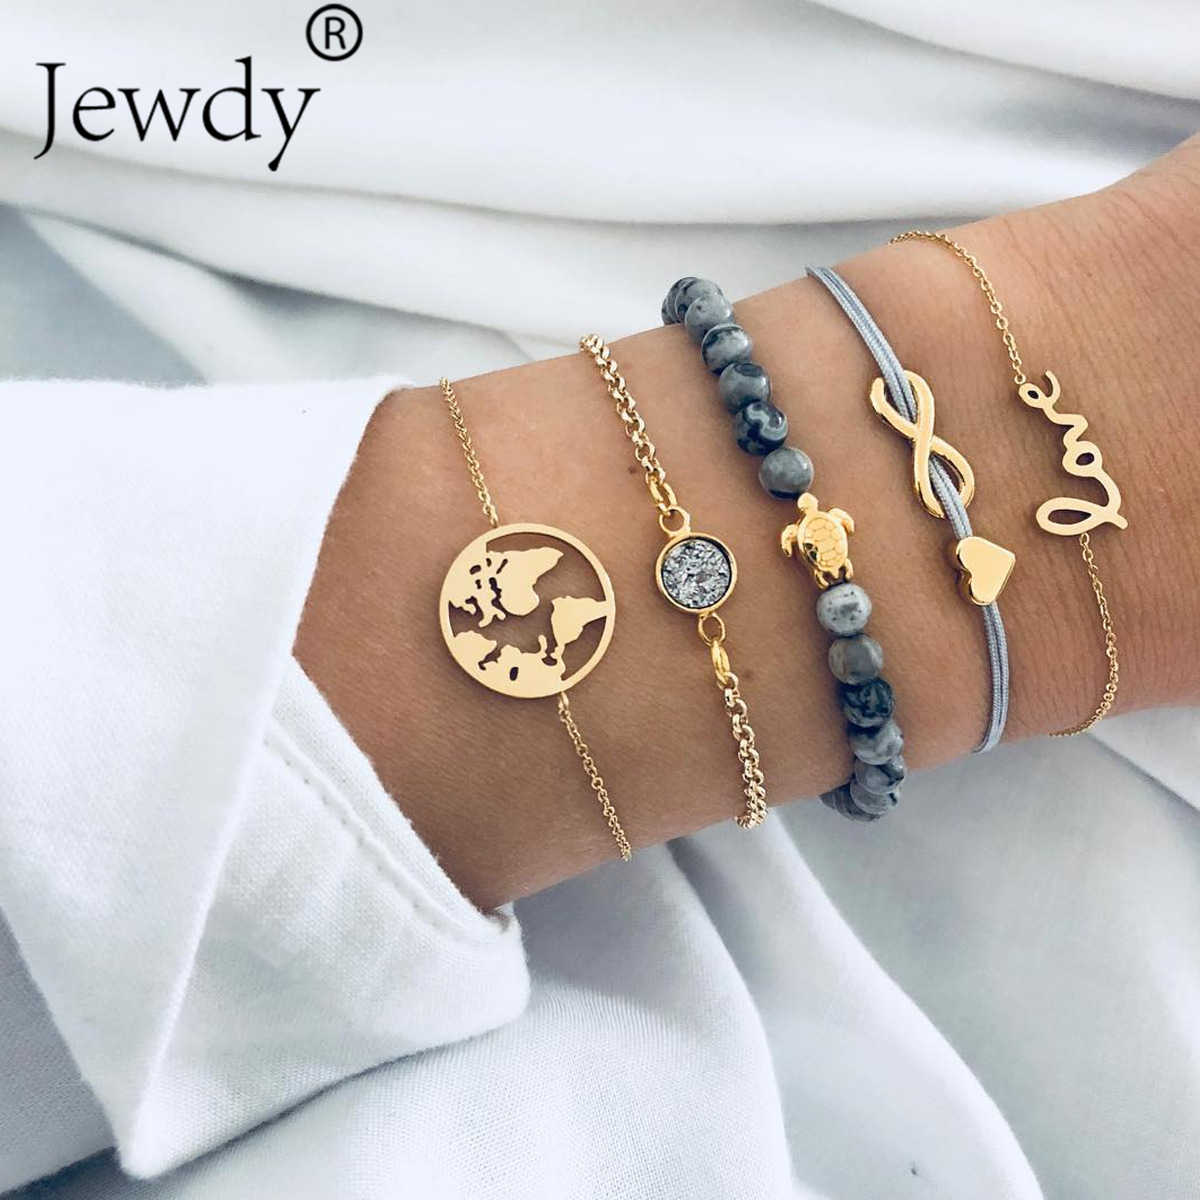 Boho Earth Multilayer love Heart Bracelet Women Crystal Charm Stone Beads Turtle Pendant Gold Cuff Bangles 5 PCS/Set Jewelry